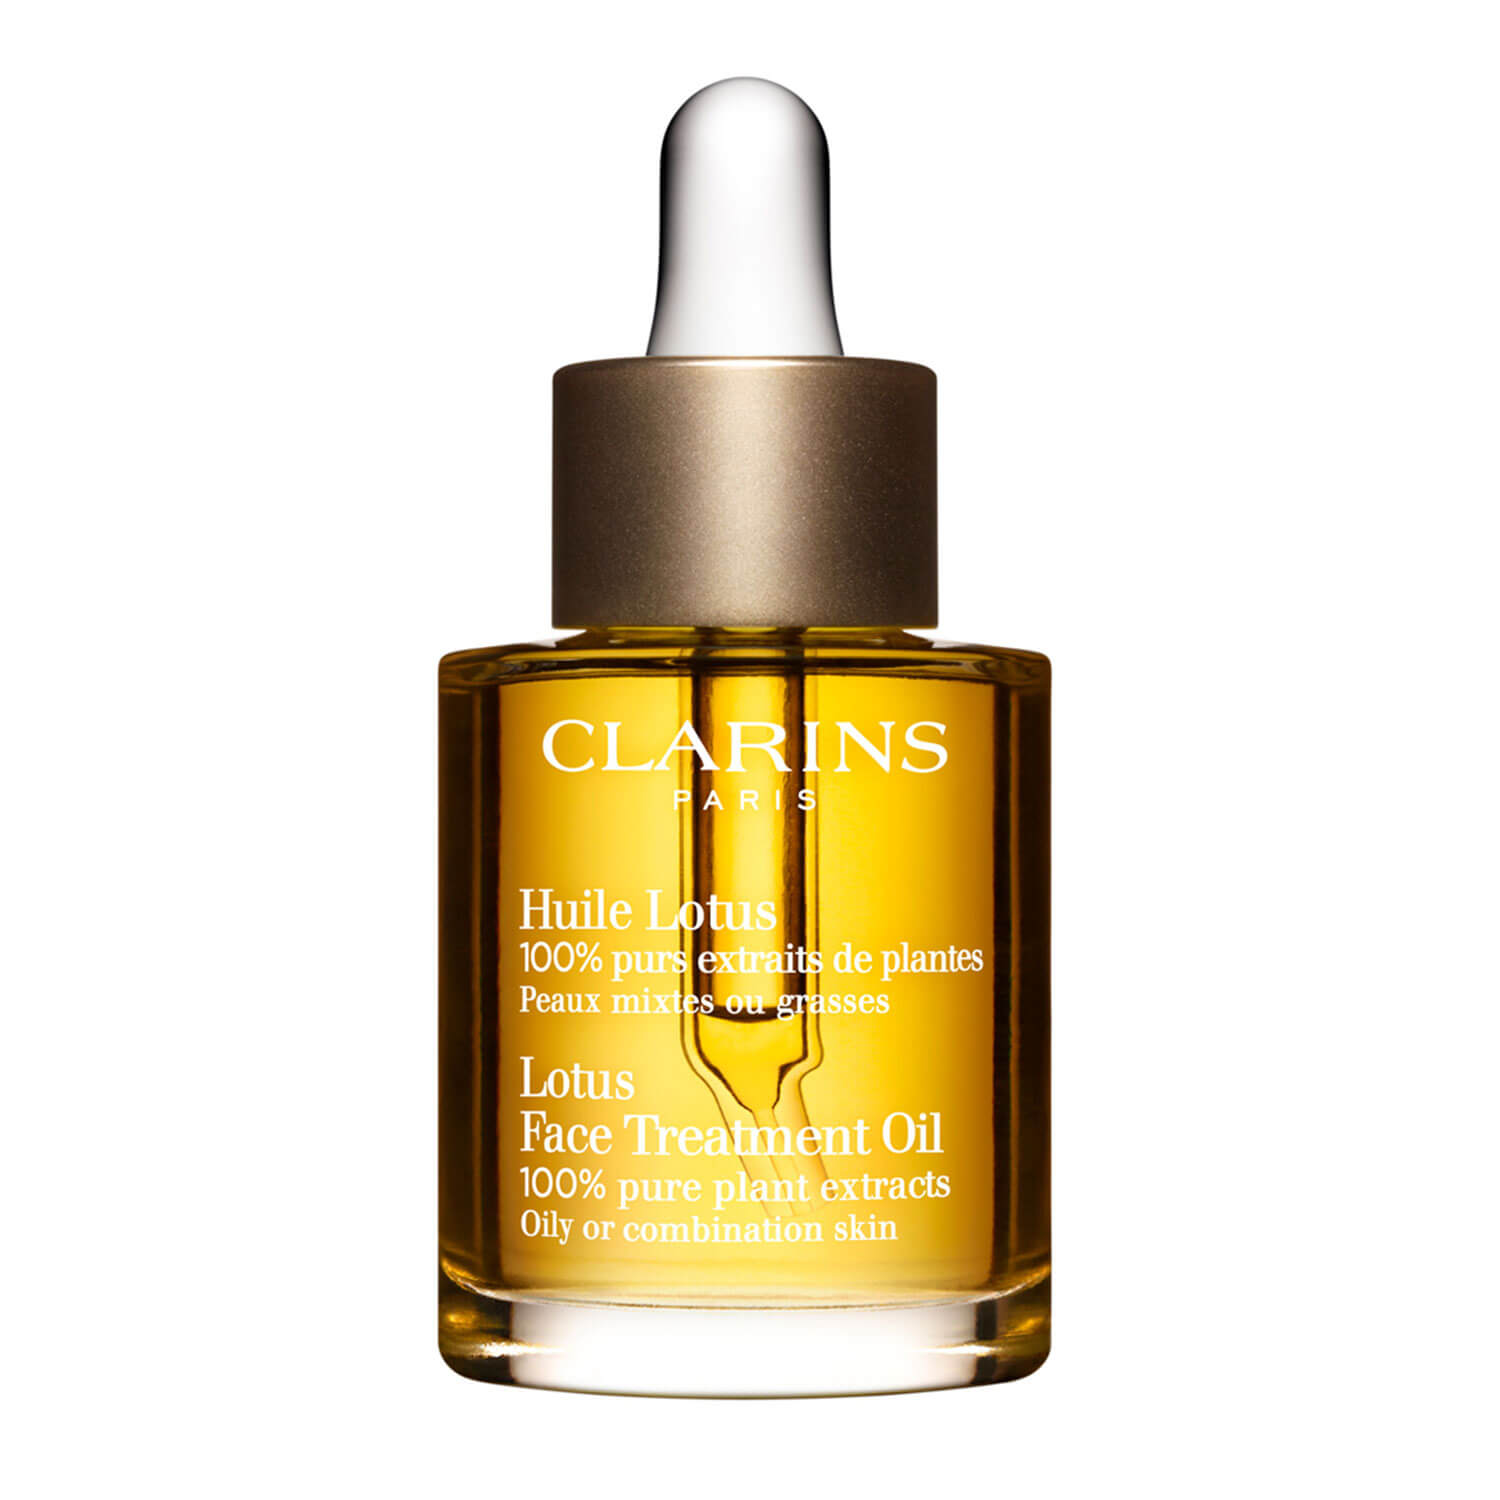 Clarins Skin - Lotus Face Treatment Oil